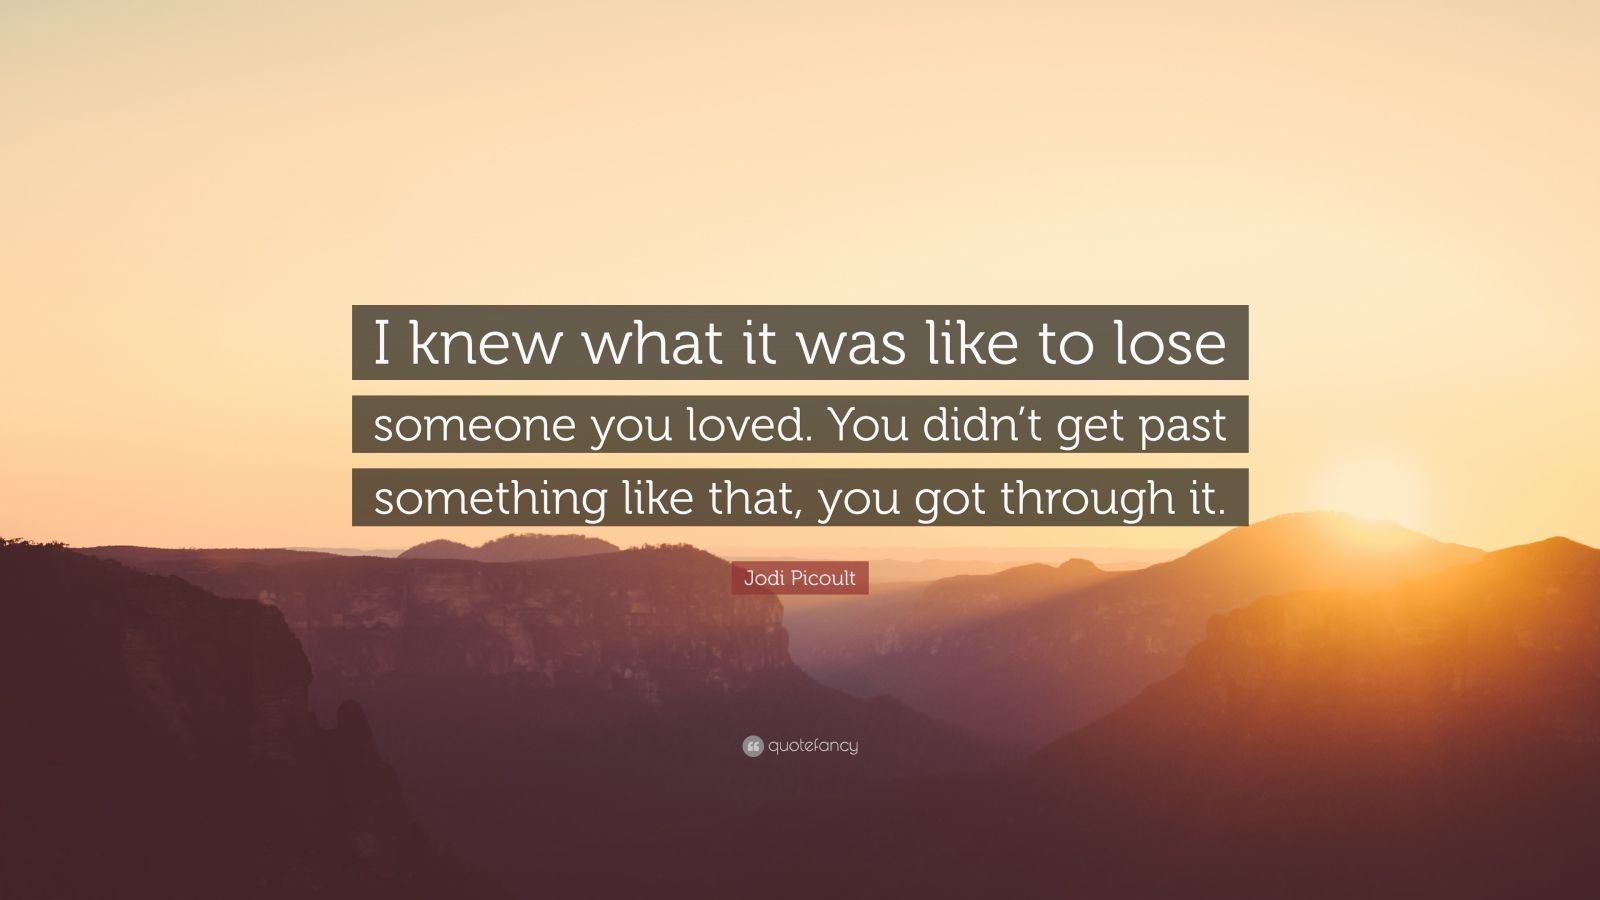 """Jodi Picoult Quote: """"I knew what it was like to lose someone you loved. You didn't get past something like that, you got through it."""""""